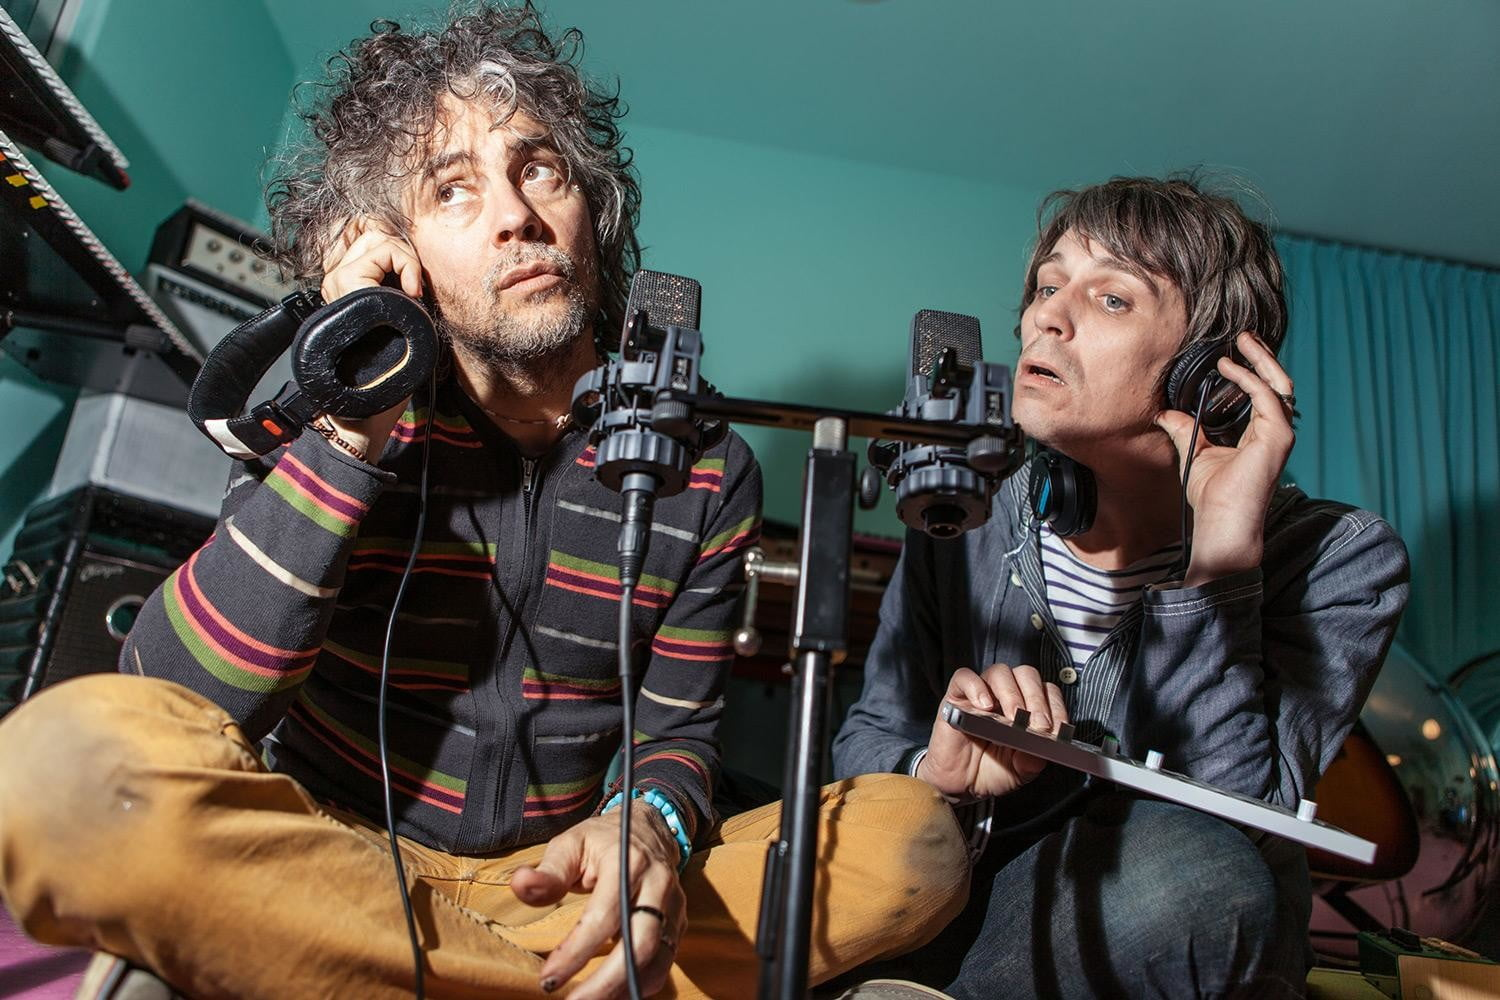 The-Flaming-Lips-Wayne-Coyne-and-Steven-Drozd-listening-photo-by-George-Salisbury